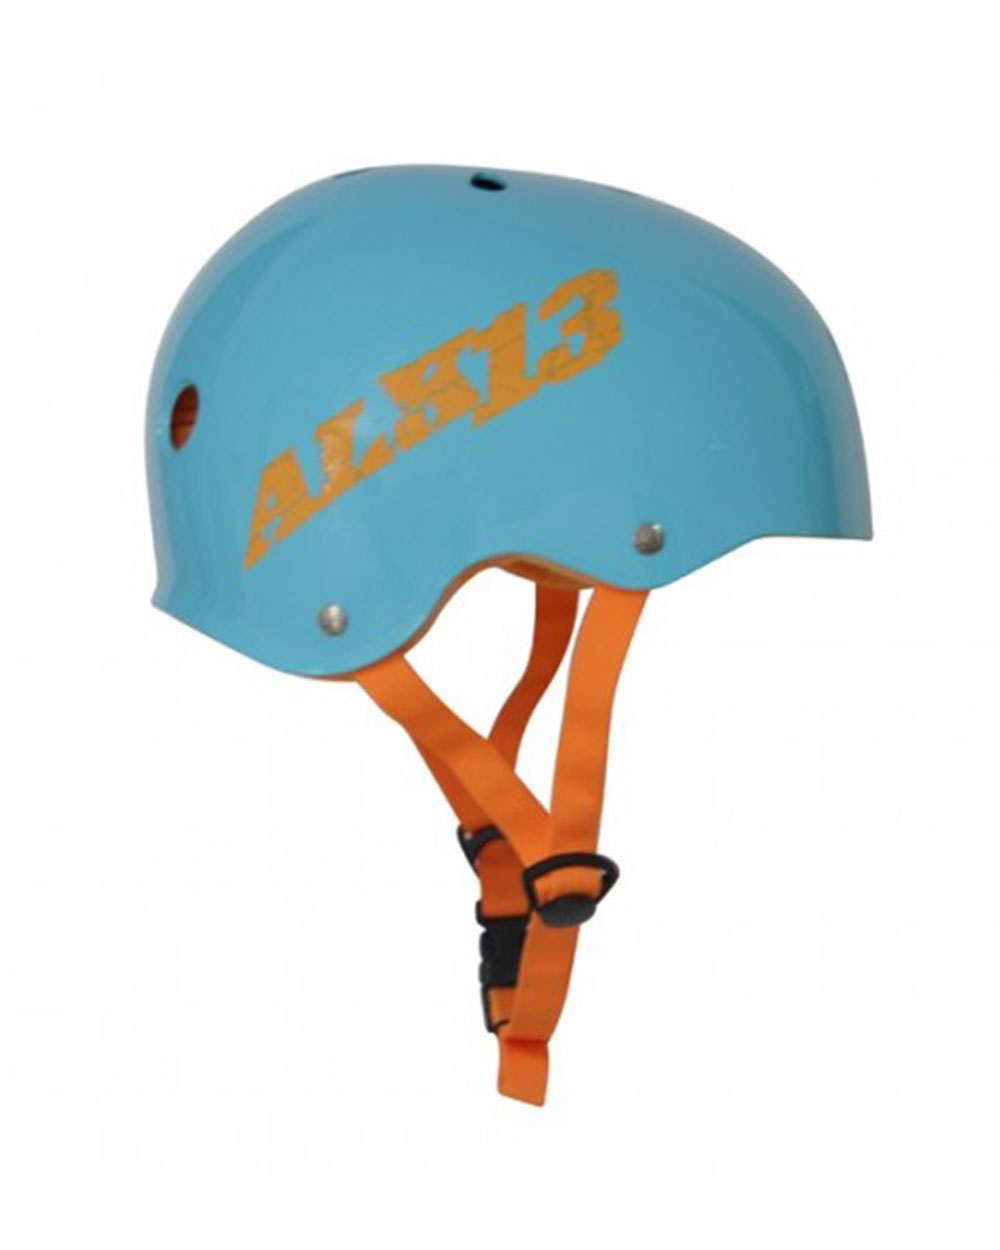 ALK13 H2O+ Helmet blue / orange